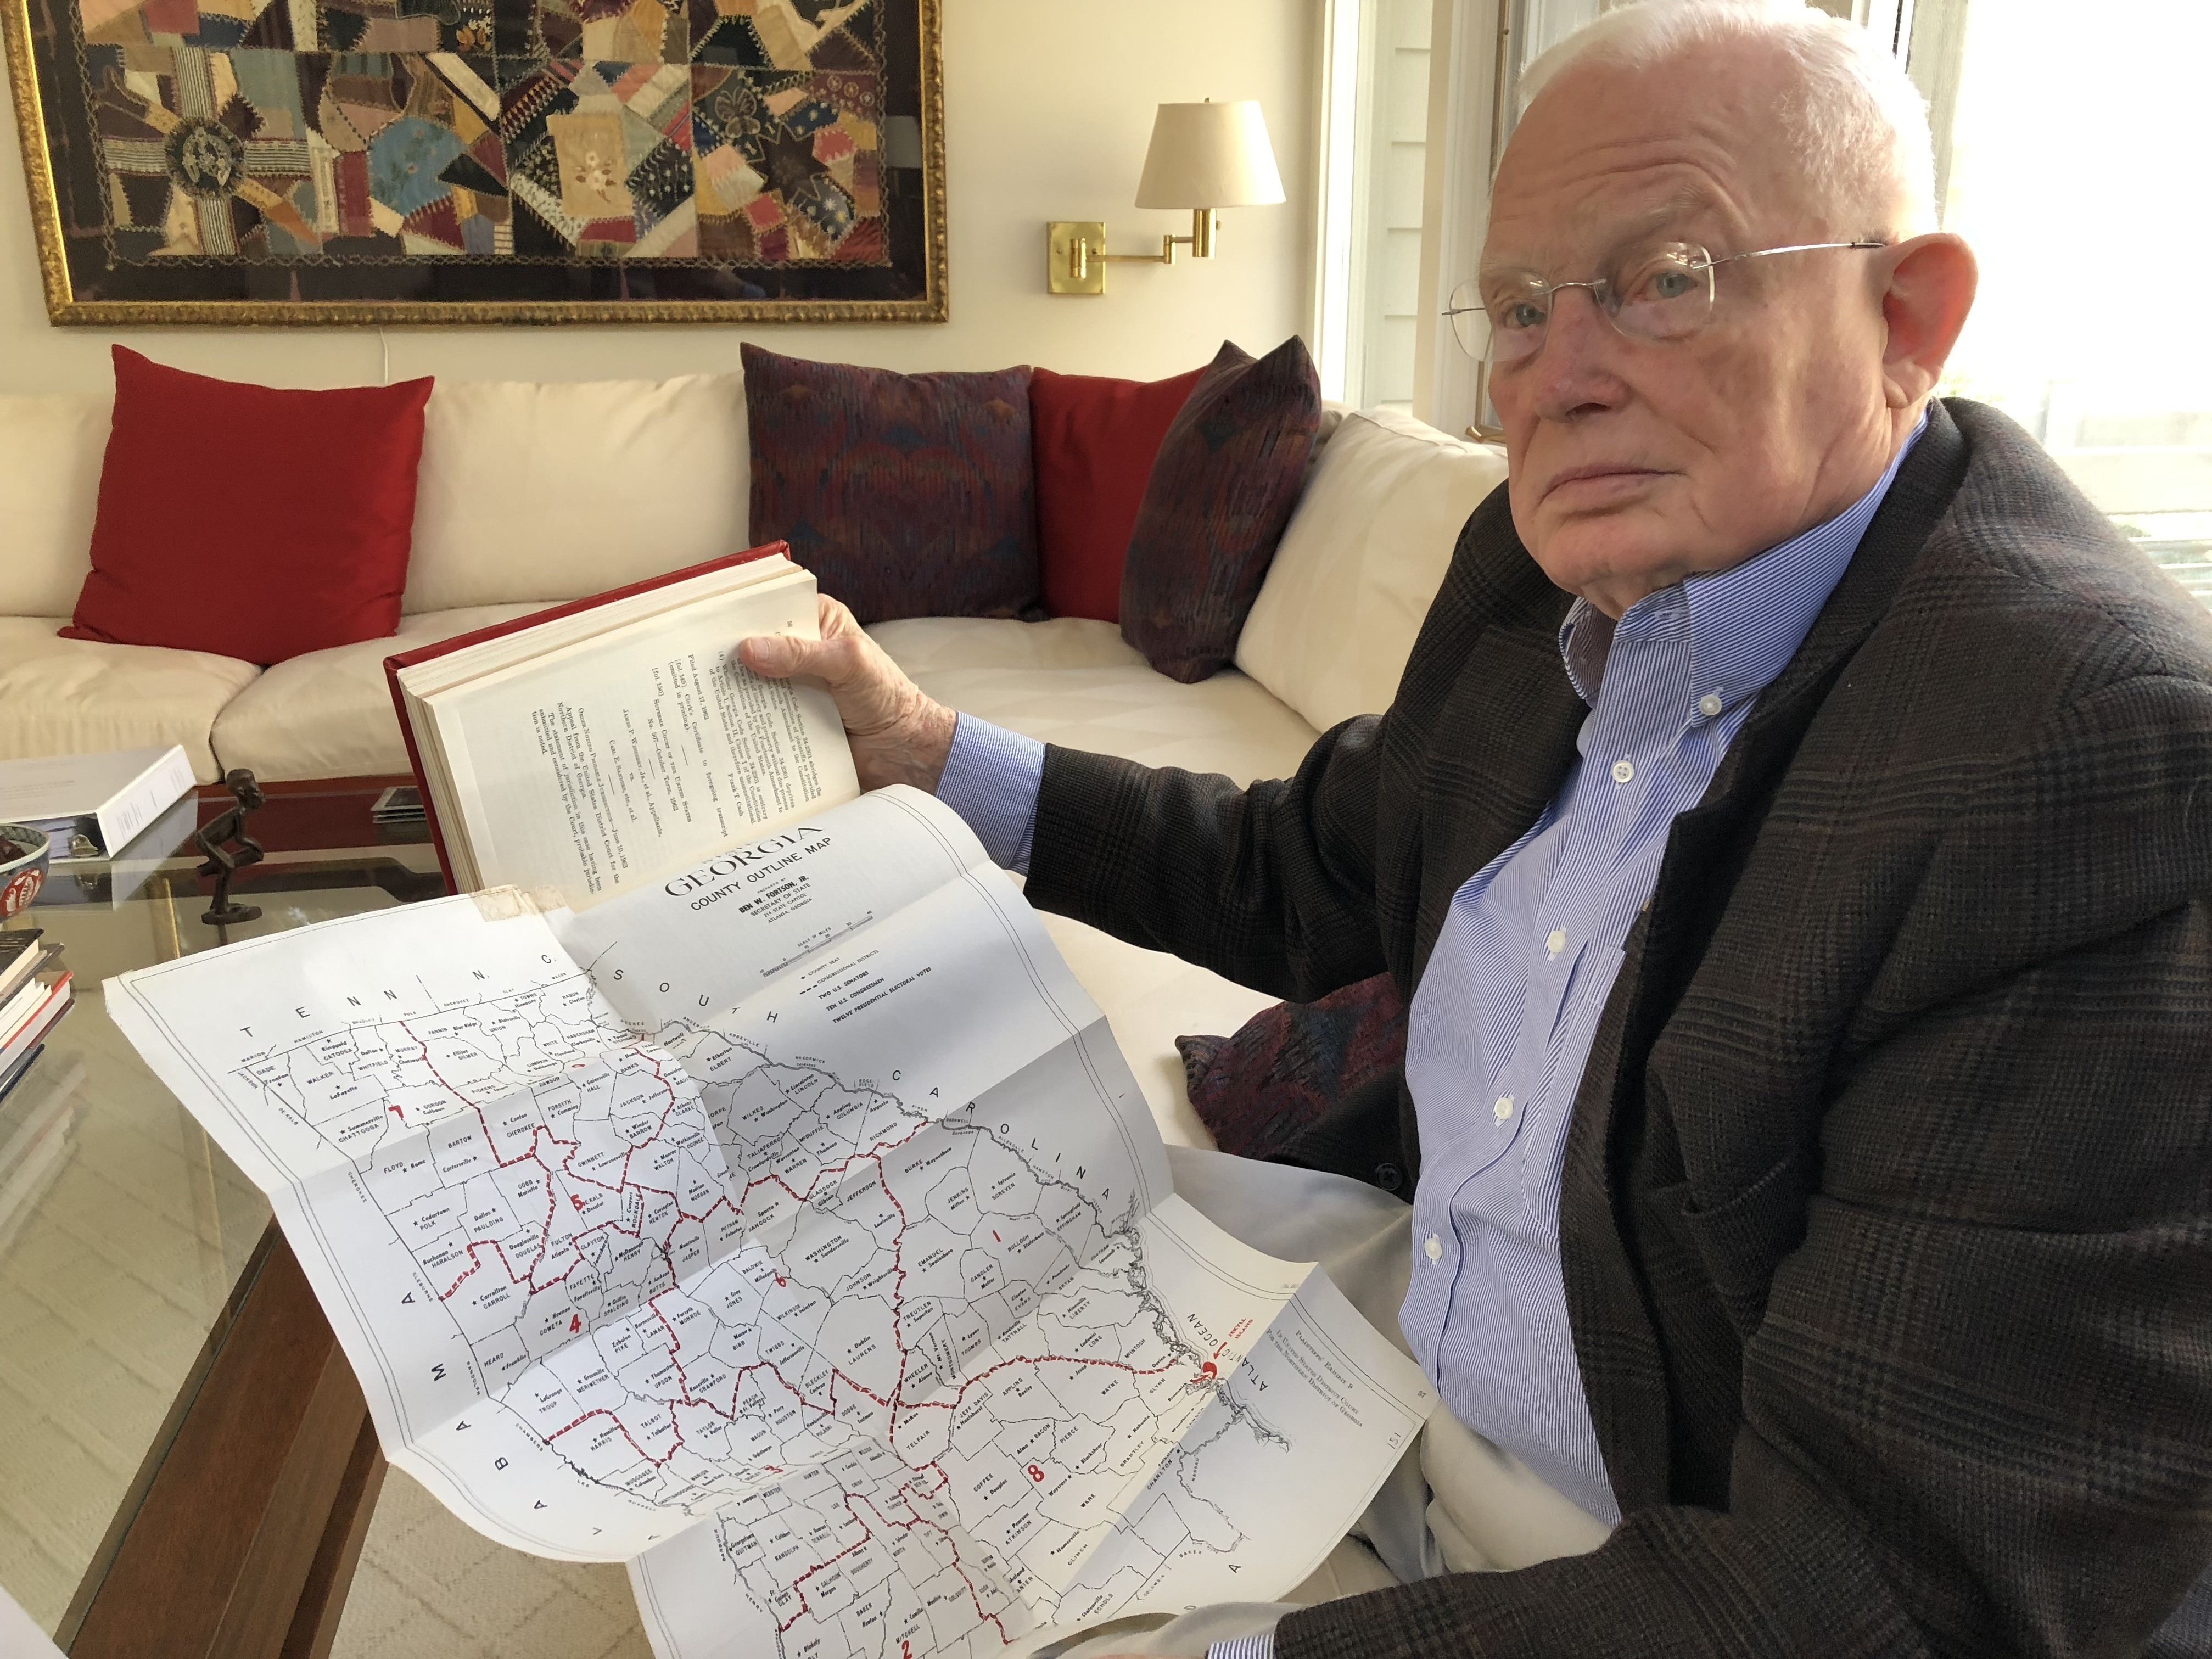 55 Years Later, Lawyer Will Again Argue Over Redistricting Before